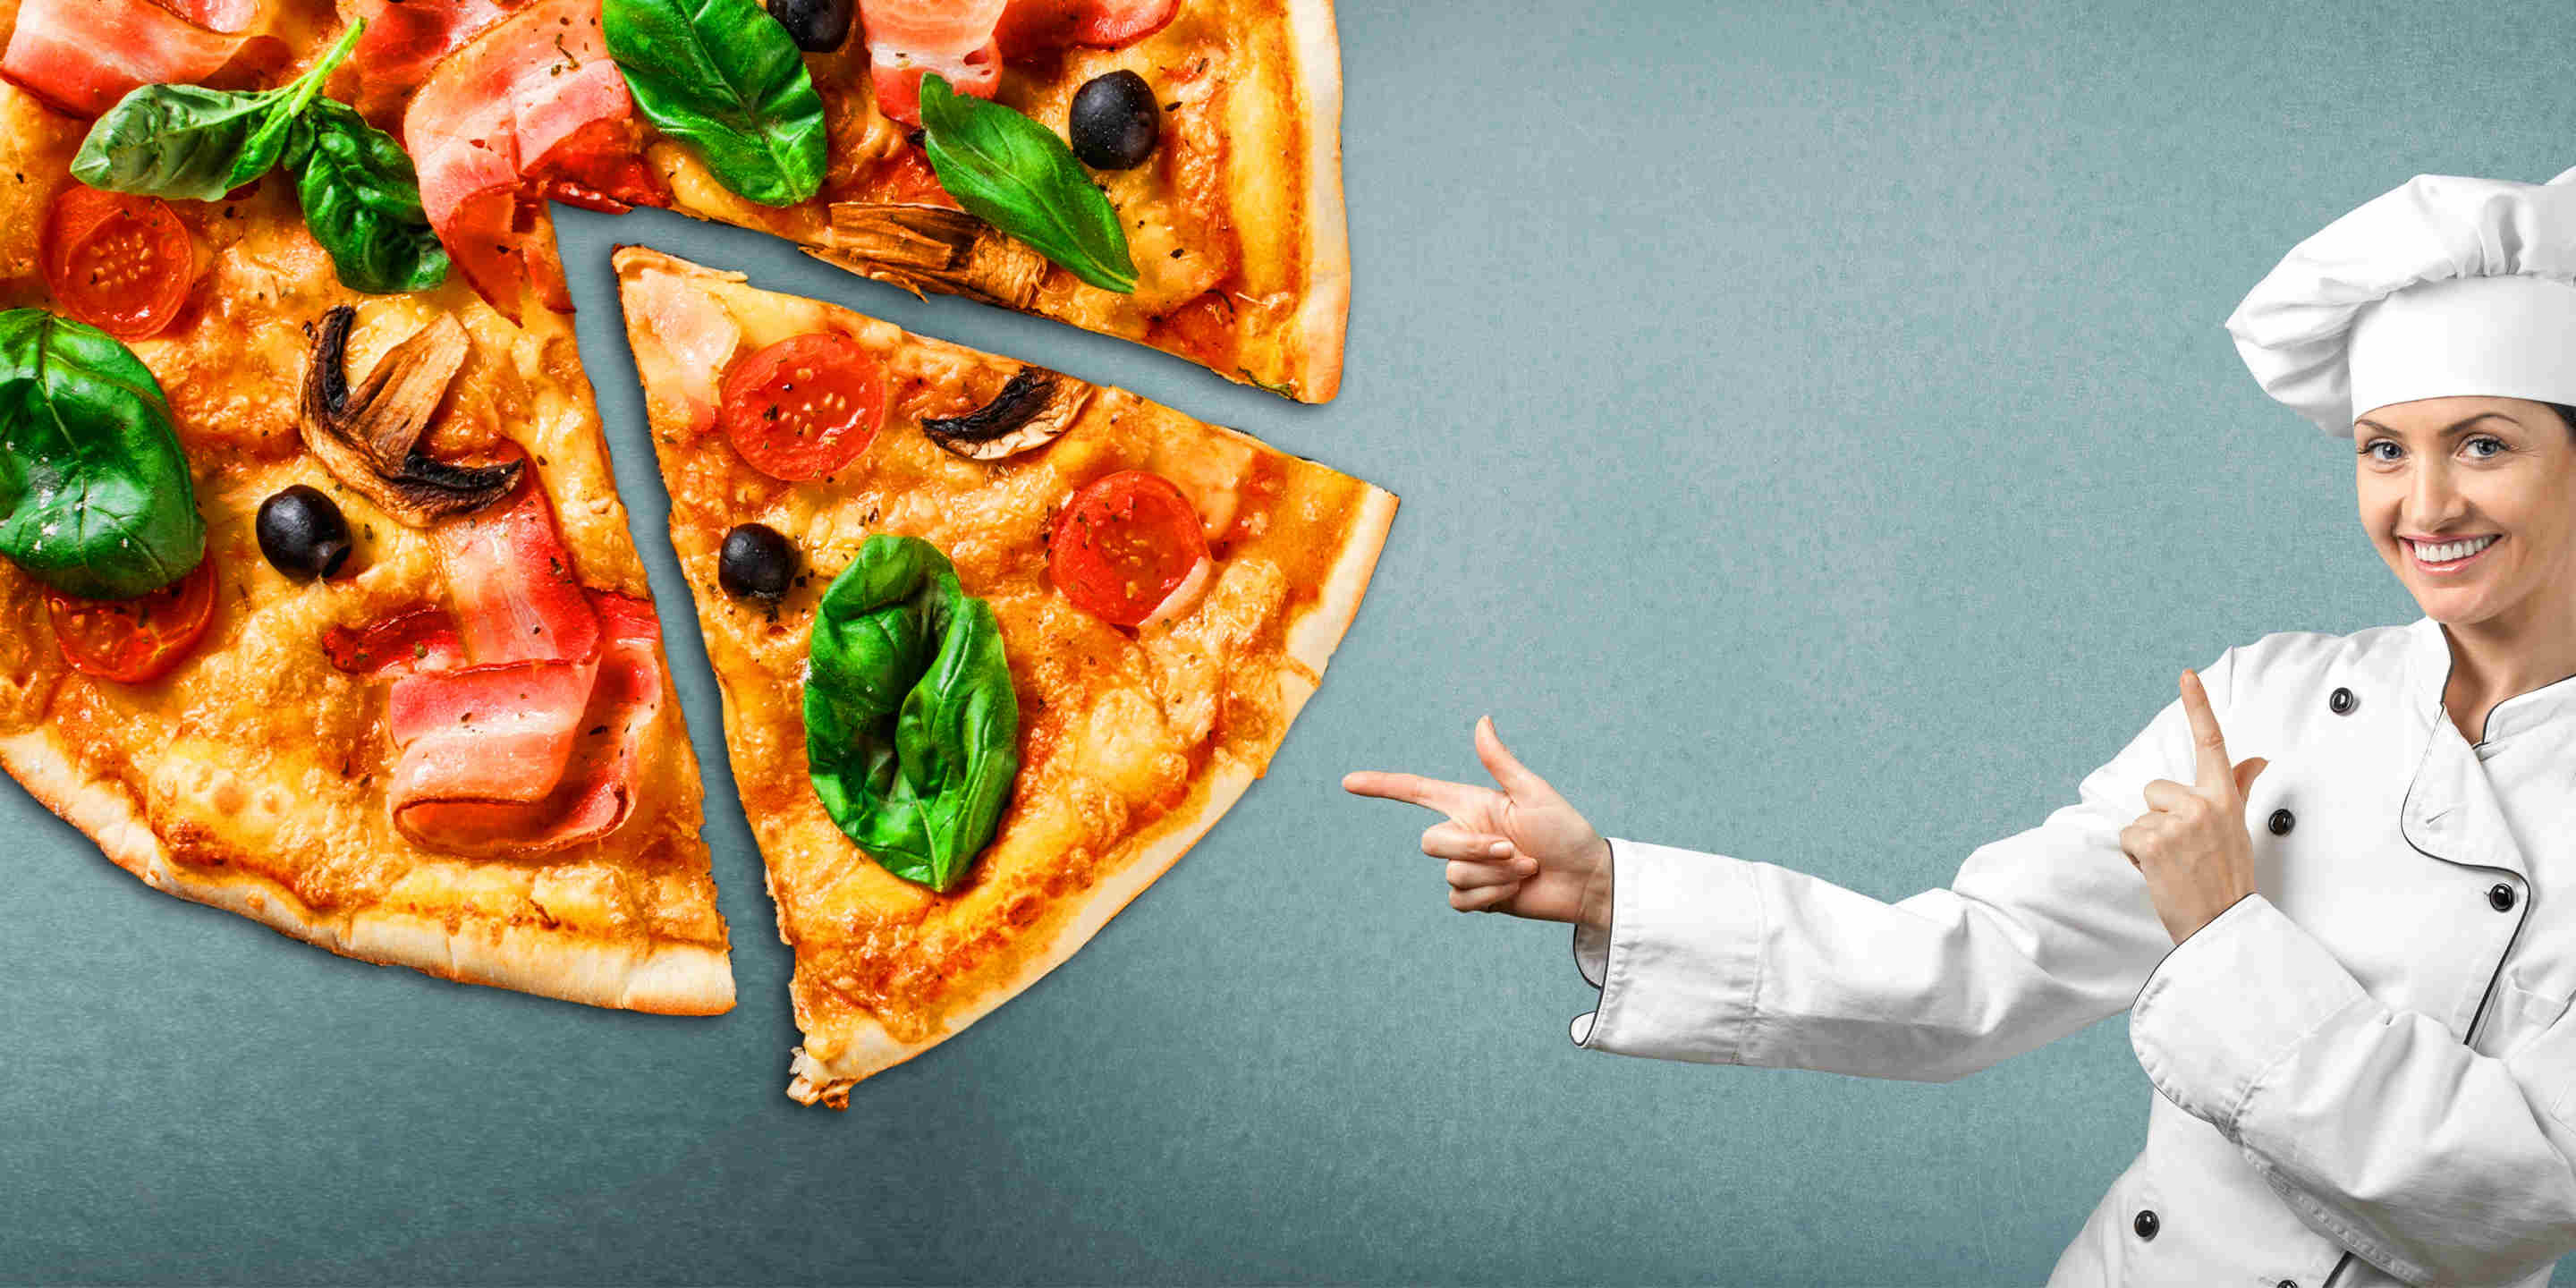 pizza chef pointing at a piece of pizza